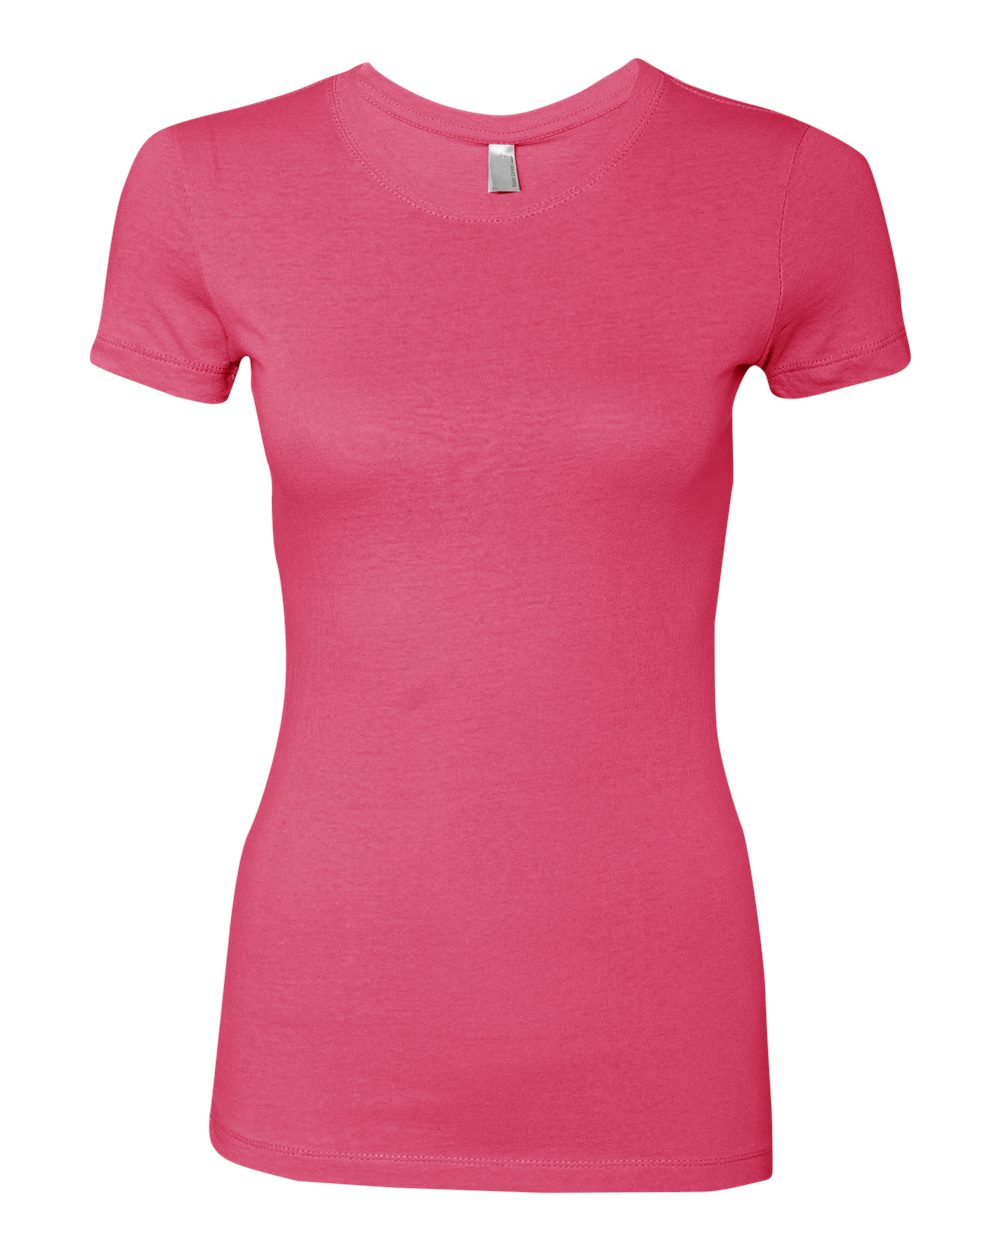 Next_Level_3300L_Hot_Pink_Front_High.jpg